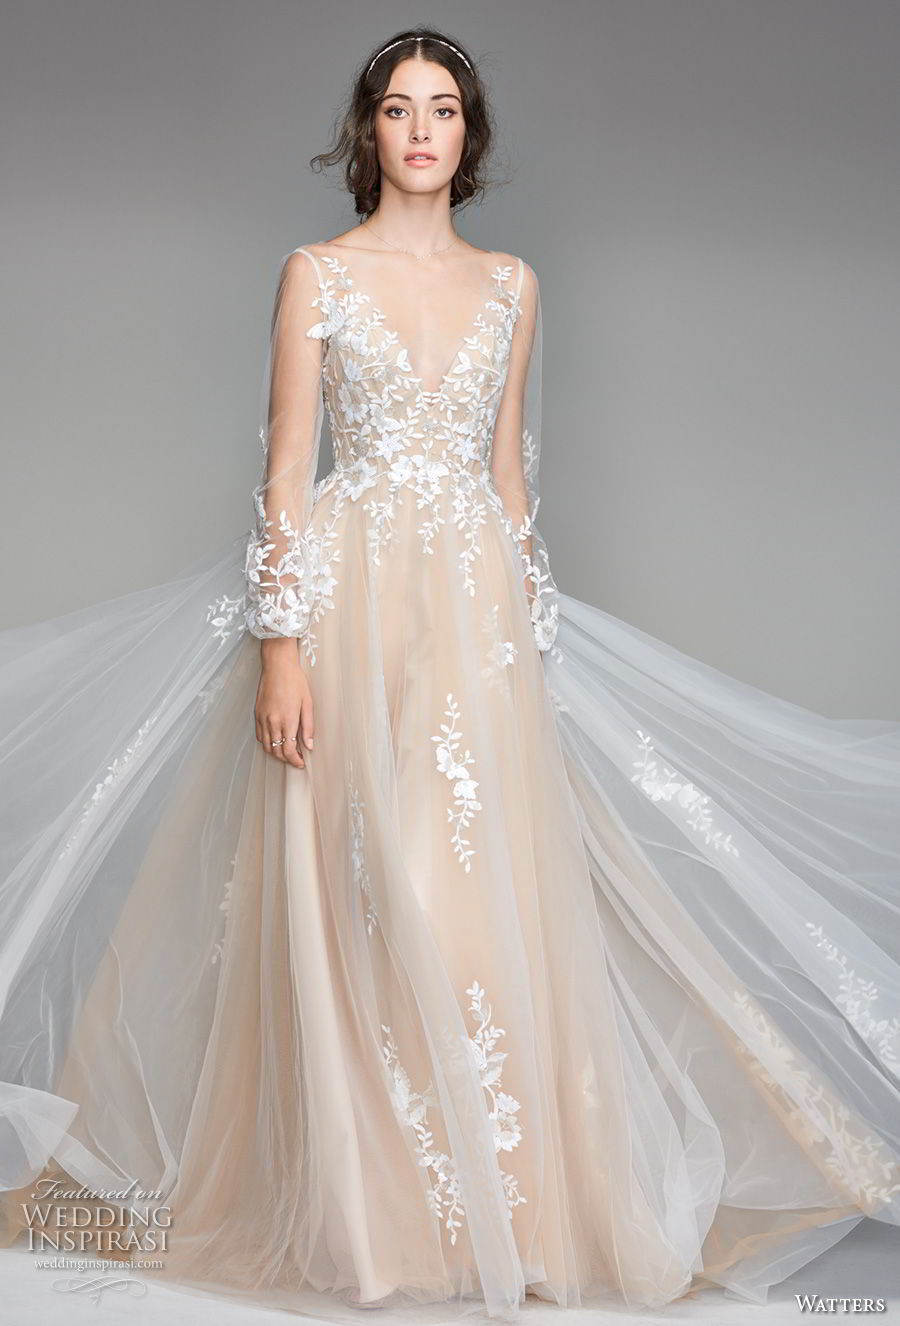 willow by watters spring 2018 long sleeves v neck heavily embellished bodice romantic champagne soft a line wedding dress scoop back sweep train (6) mv